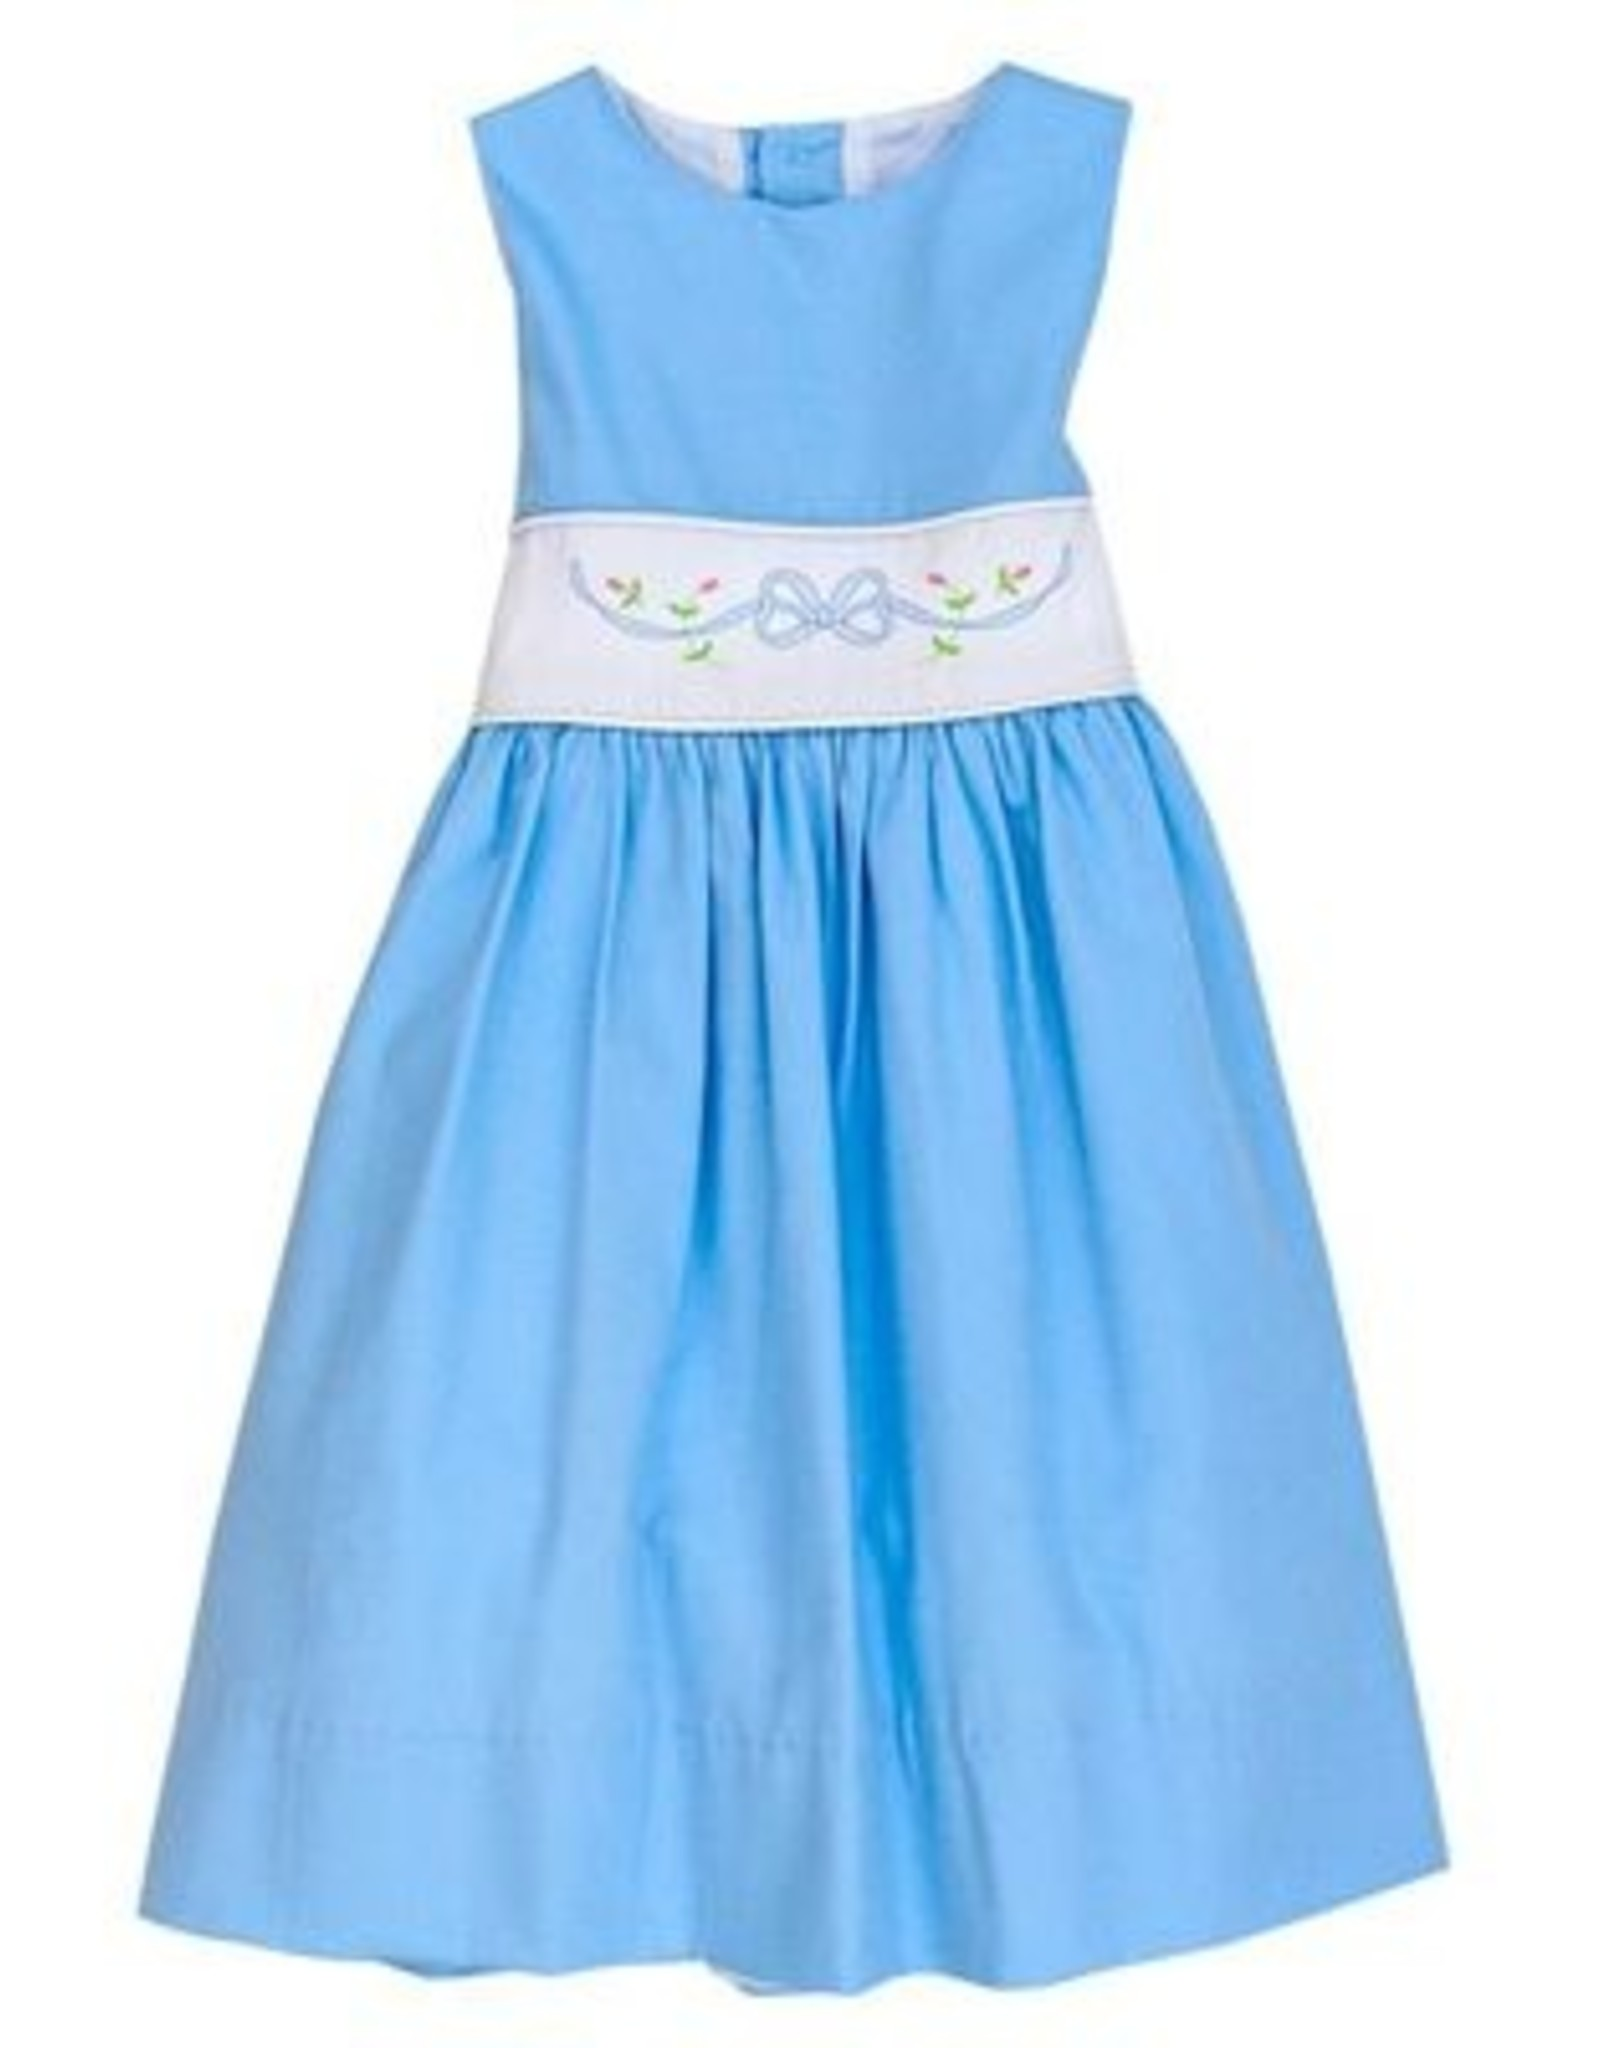 The Bailey Boys Blue Bonnet Dress